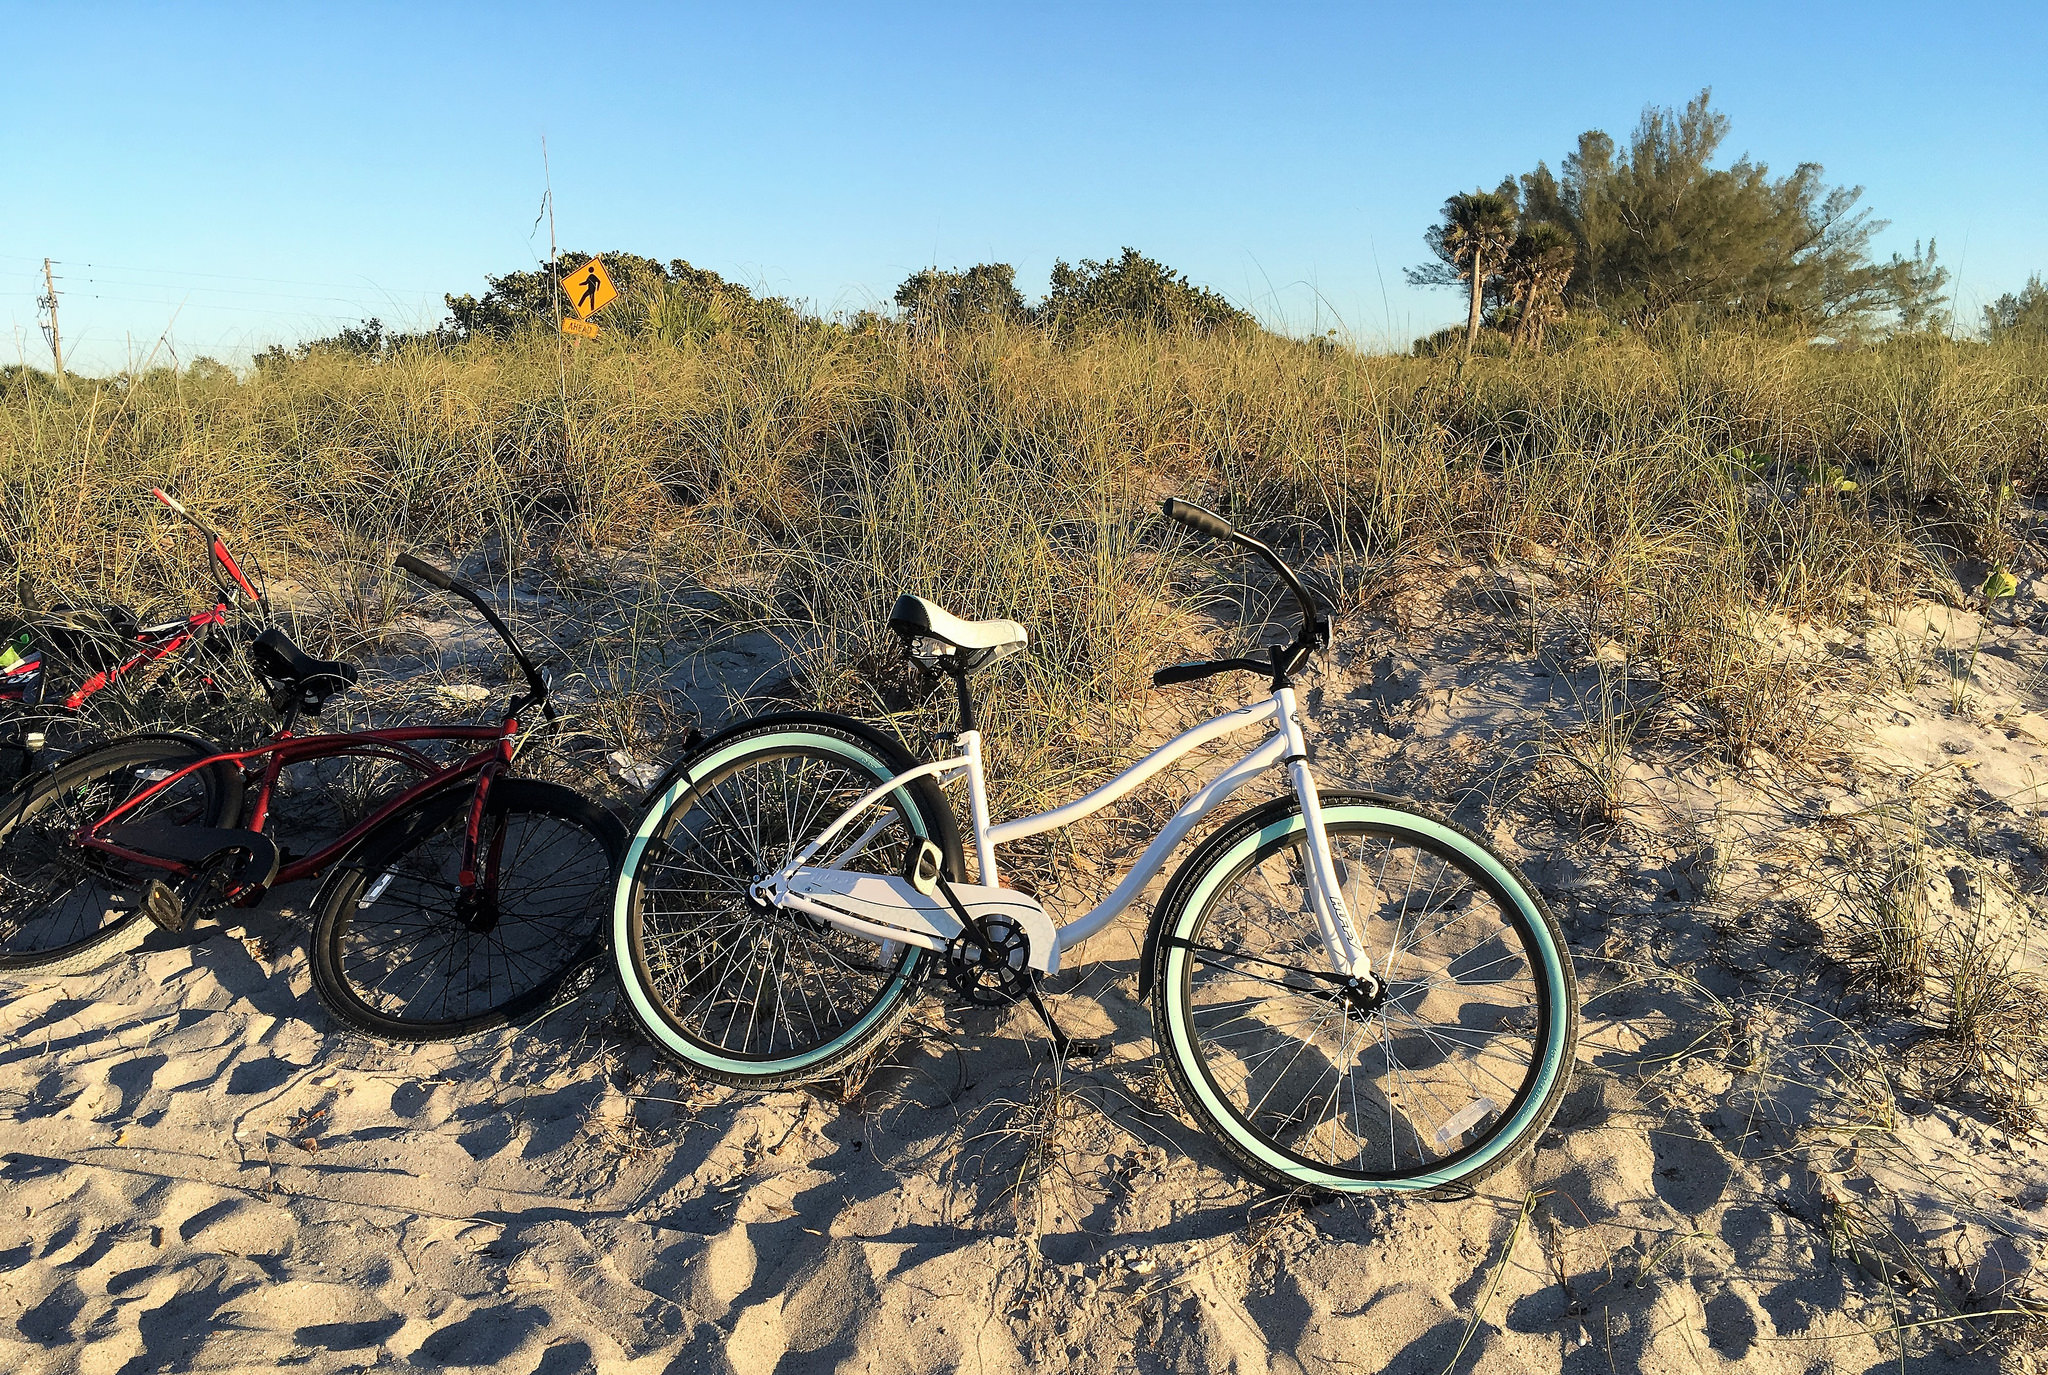 Things to do in Manasota Key Florida - bike rentals